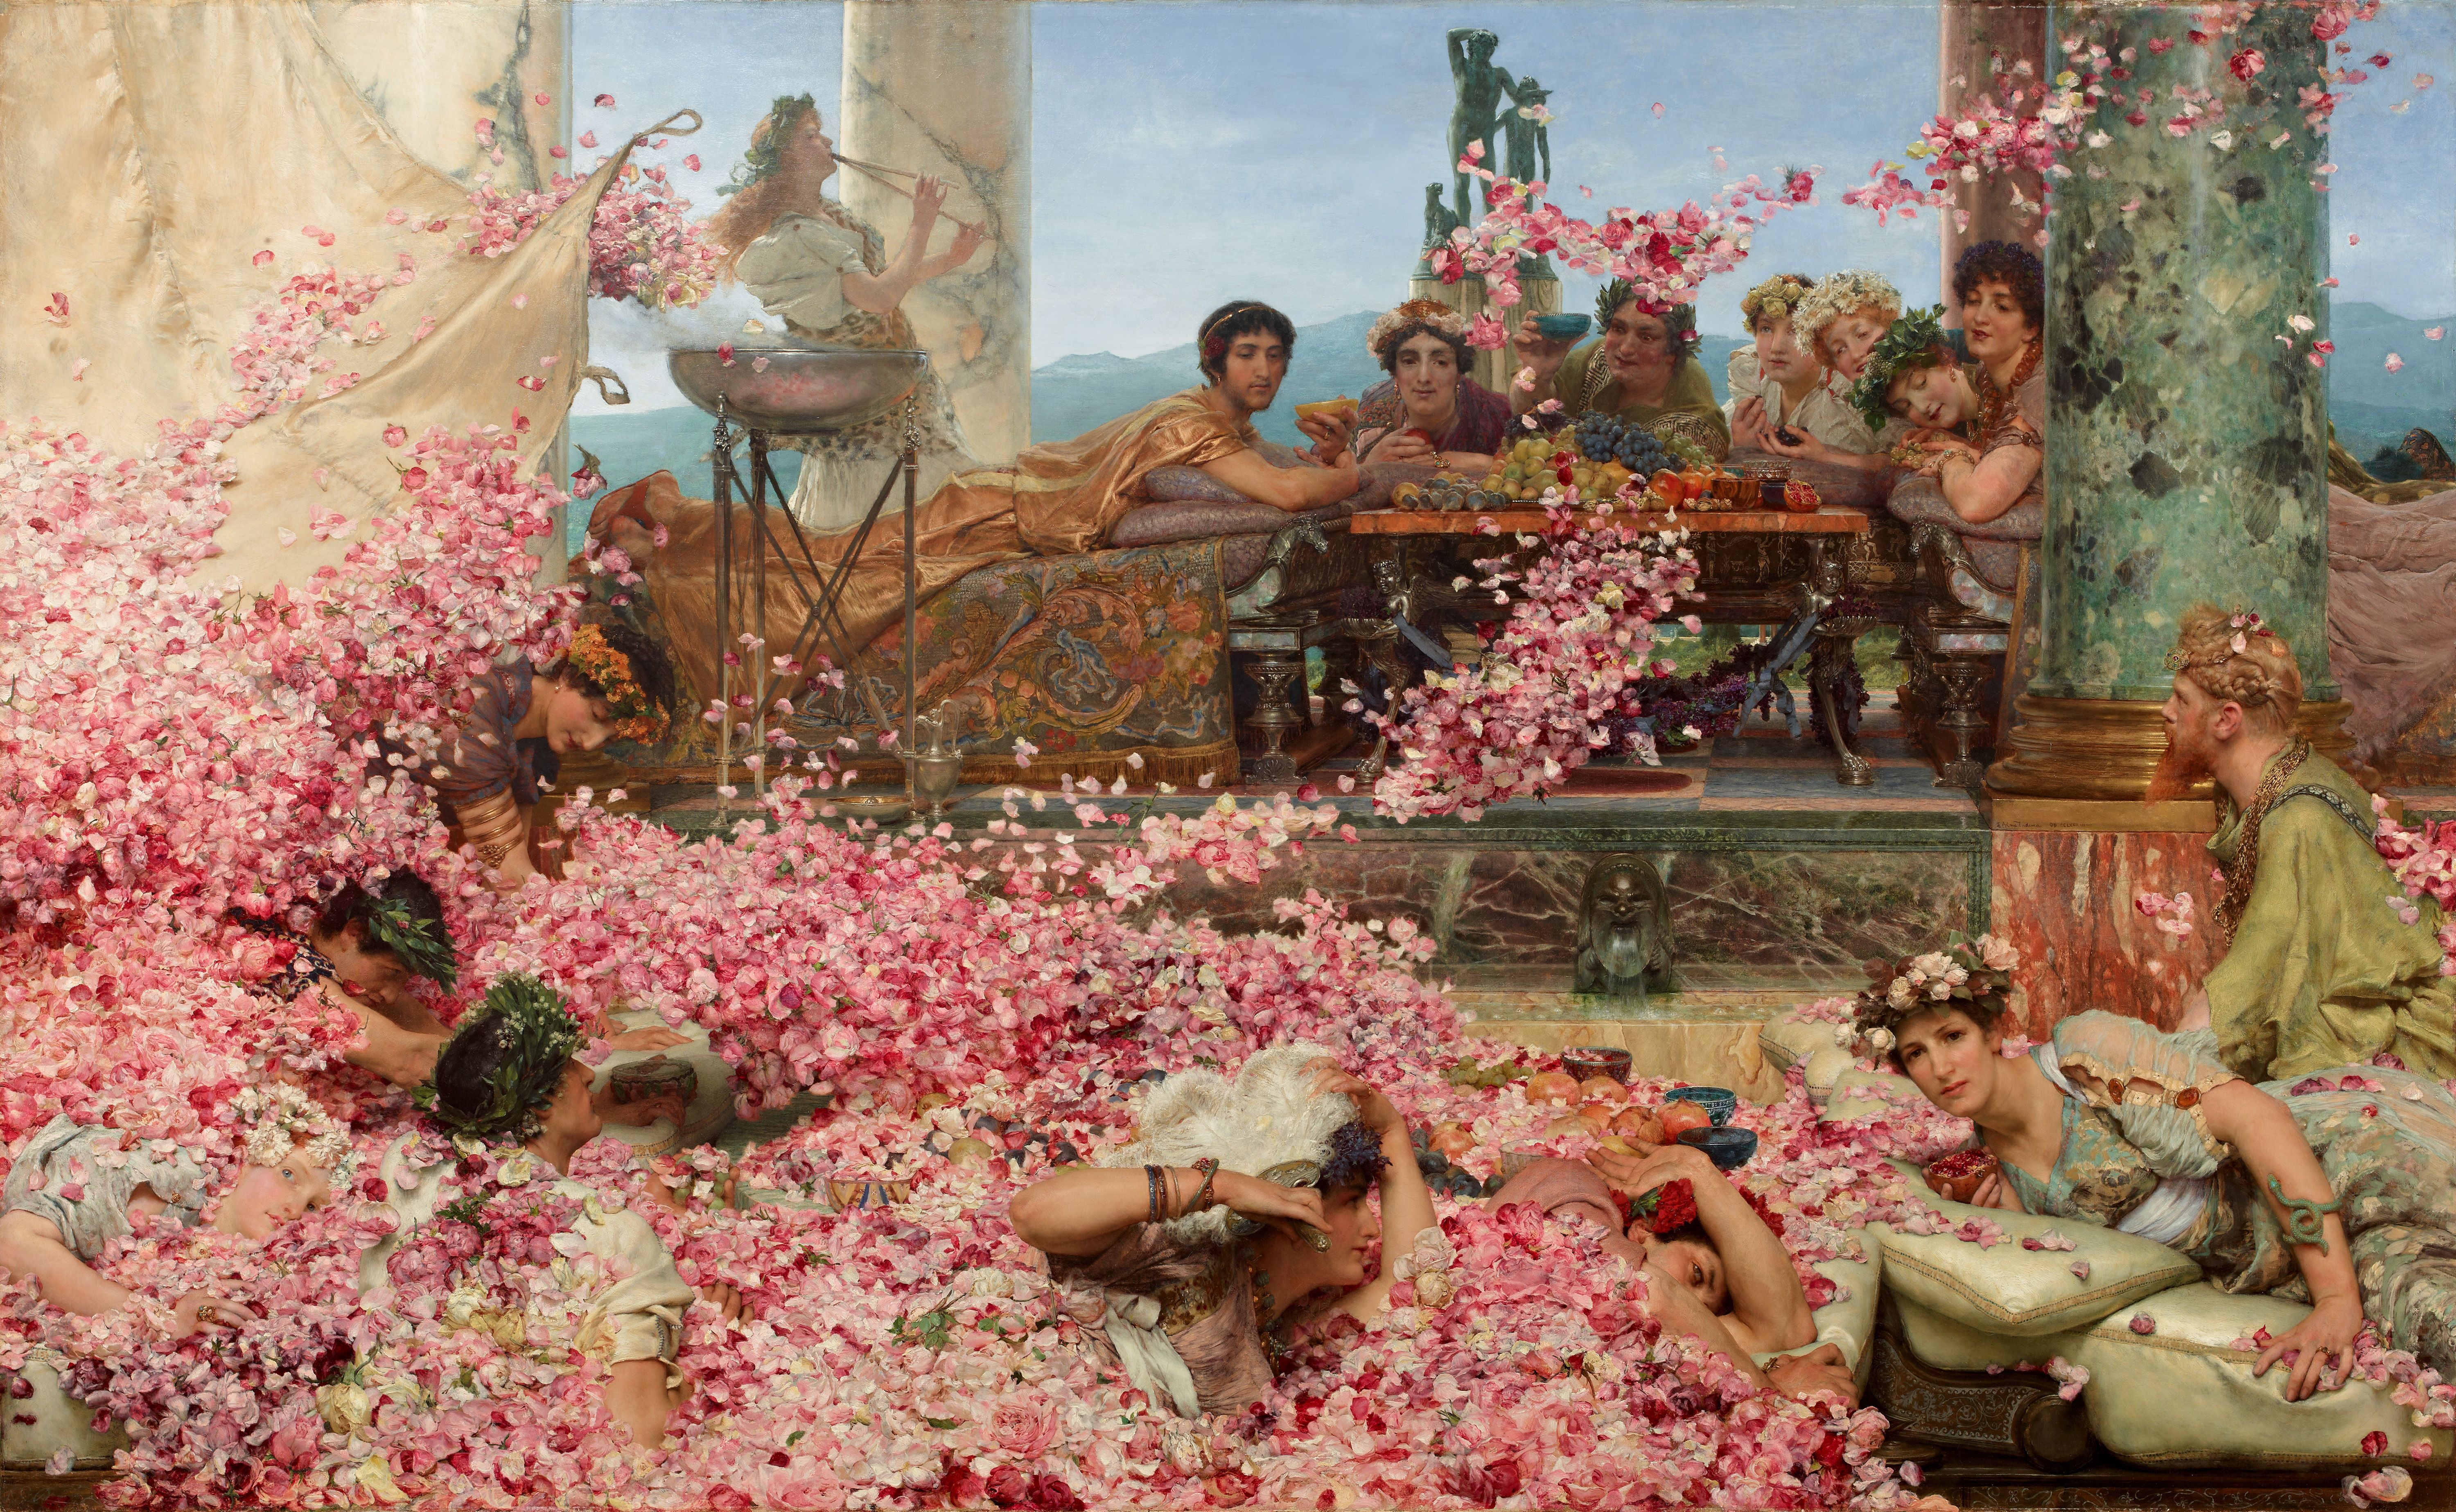 """An evocative depiction of the decadence of scent in the Roman era. """"Rose of Heliobalus"""" by Lawrence Alma-Tadema,"""